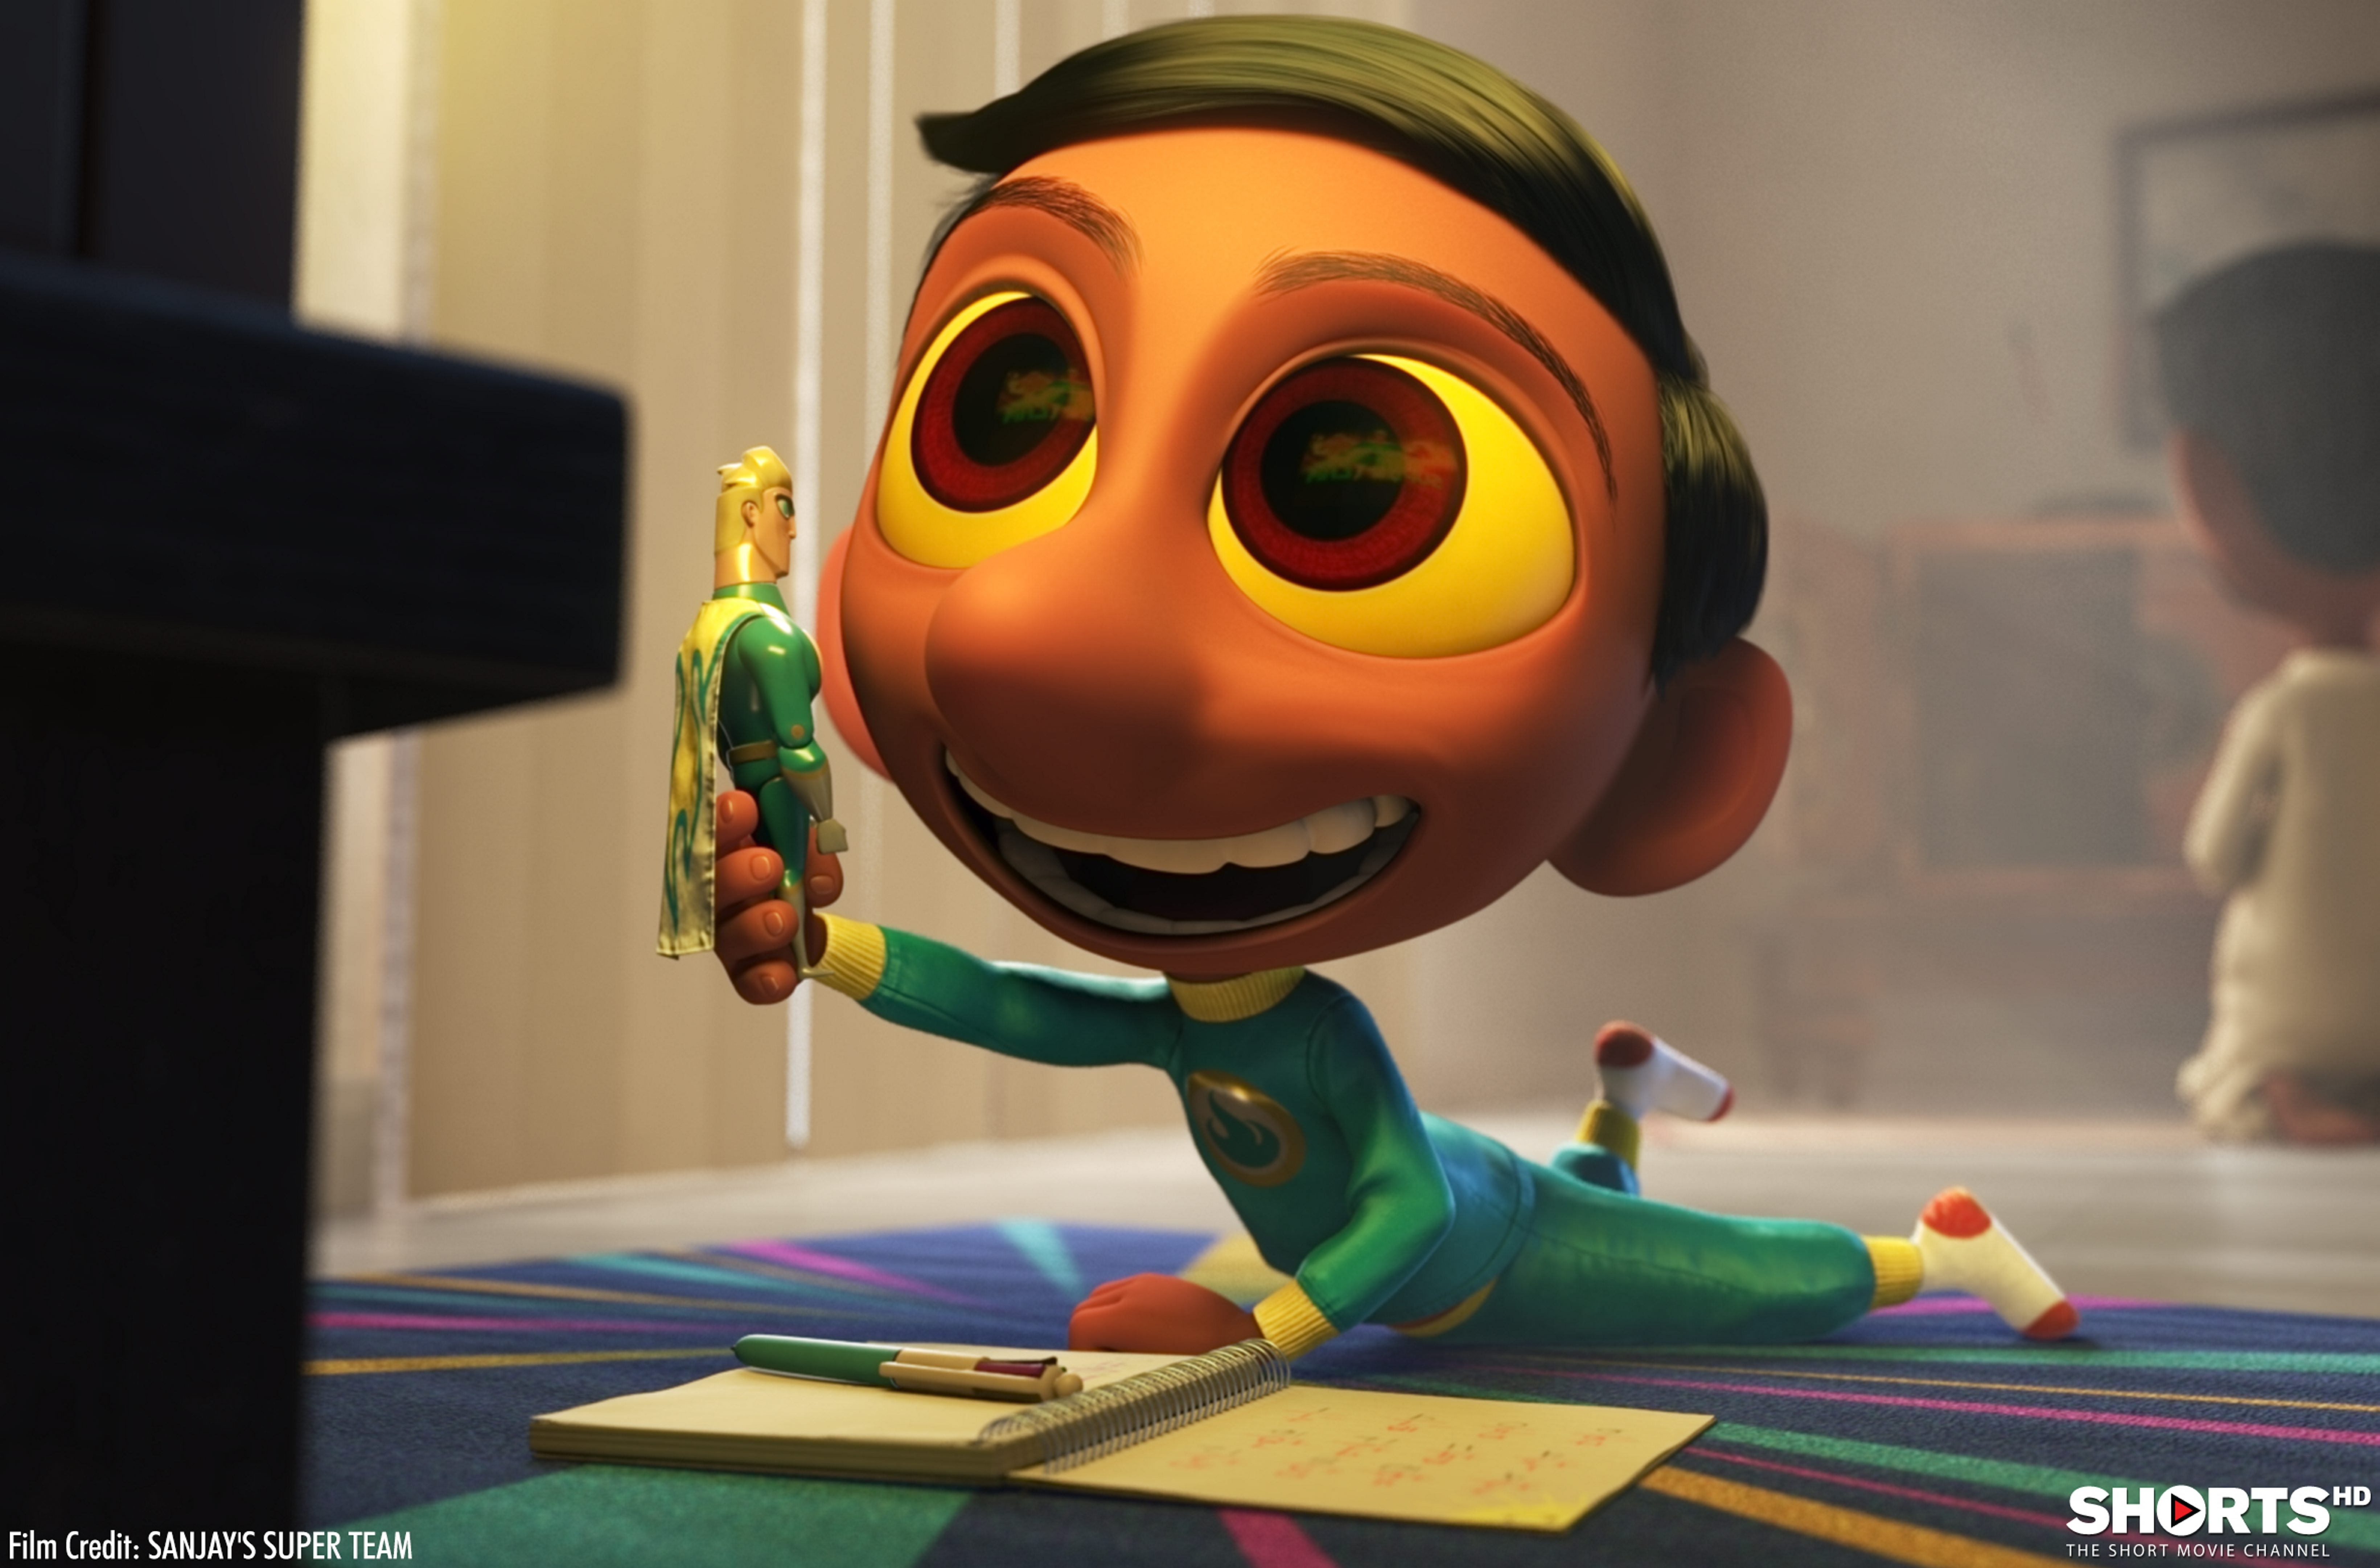 """Sanjay's Super Team"" is one of the short animated films nominated for an Oscar."